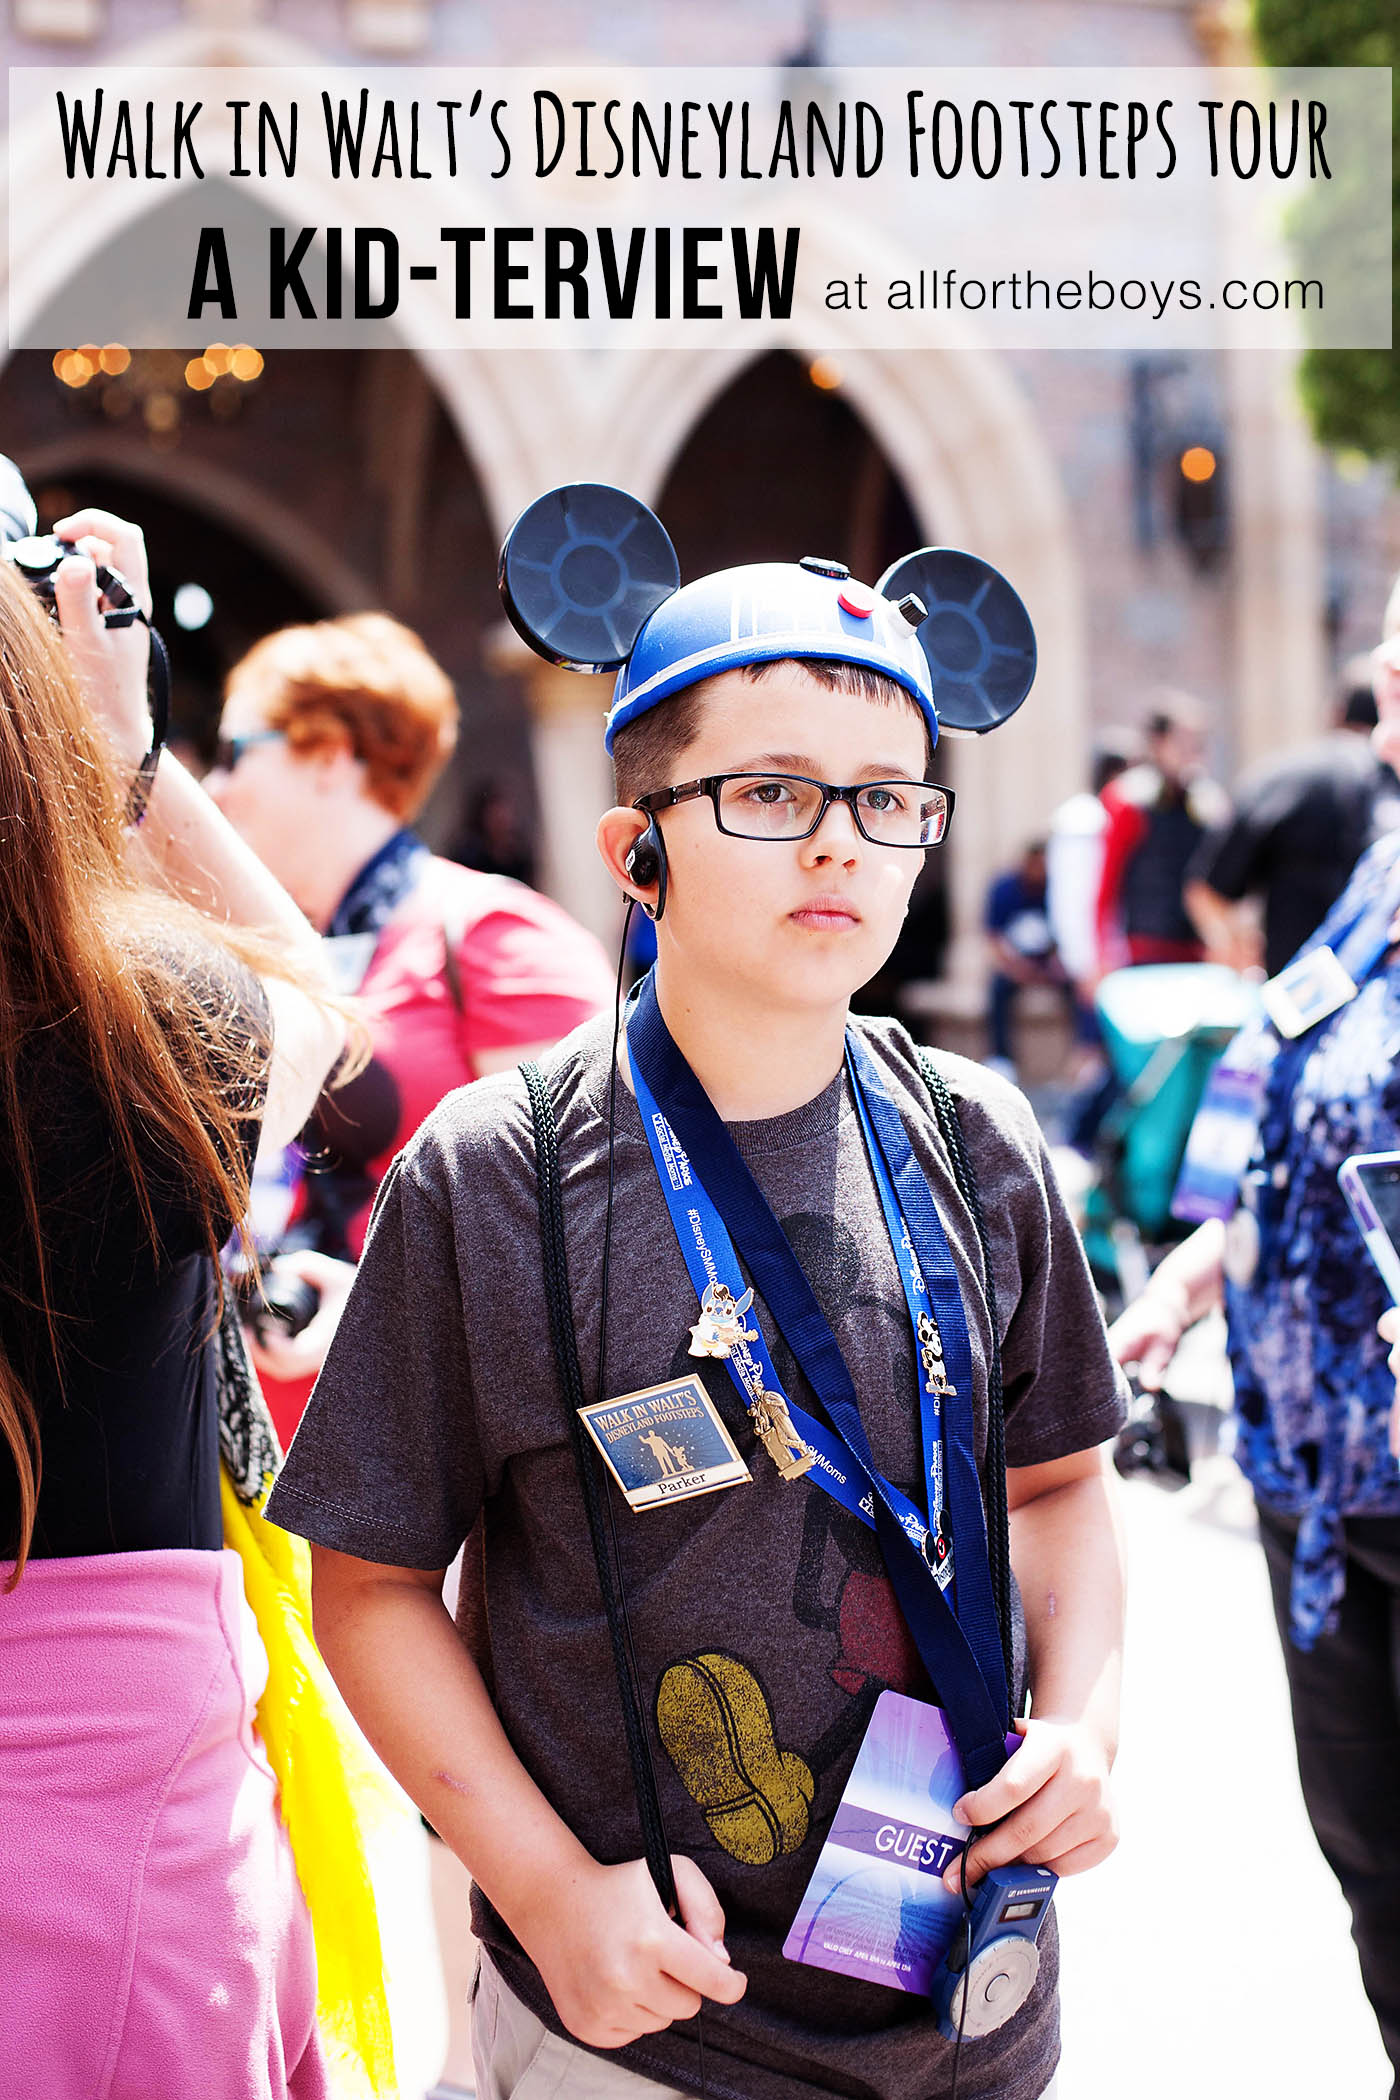 Walk in Walt's Disneyland Footsteps Tour - a Kid-terview